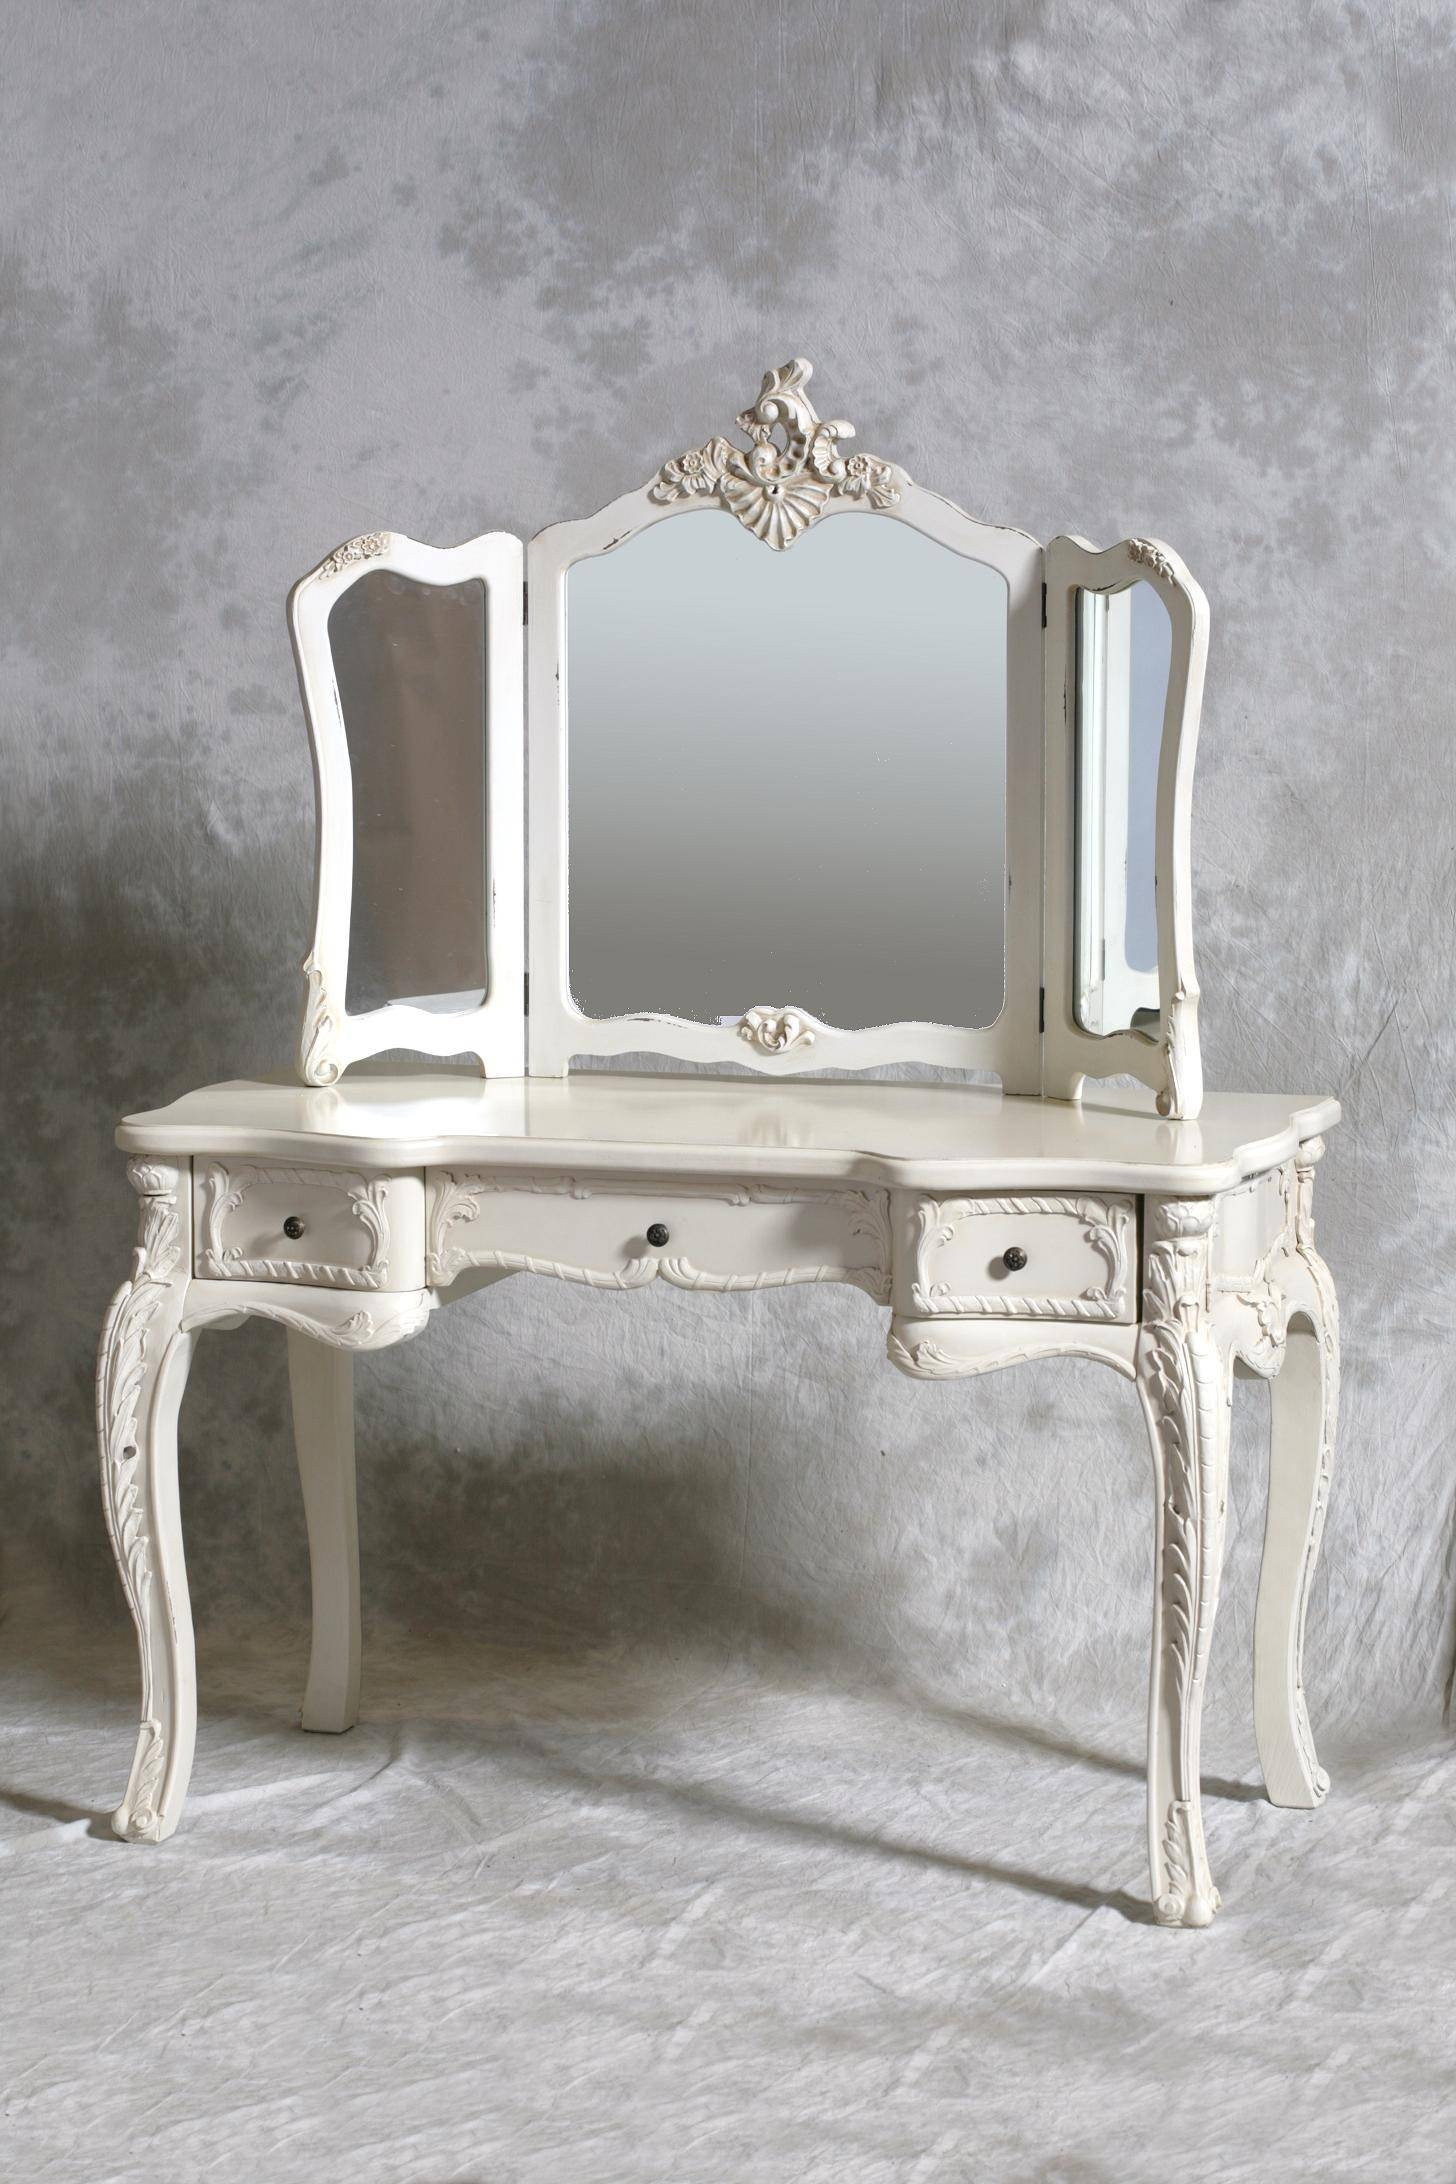 Antique Makeup Vanity With Mirror 92 Stunning Decor With Vintage regarding Vintage White Mirrors (Image 2 of 25)